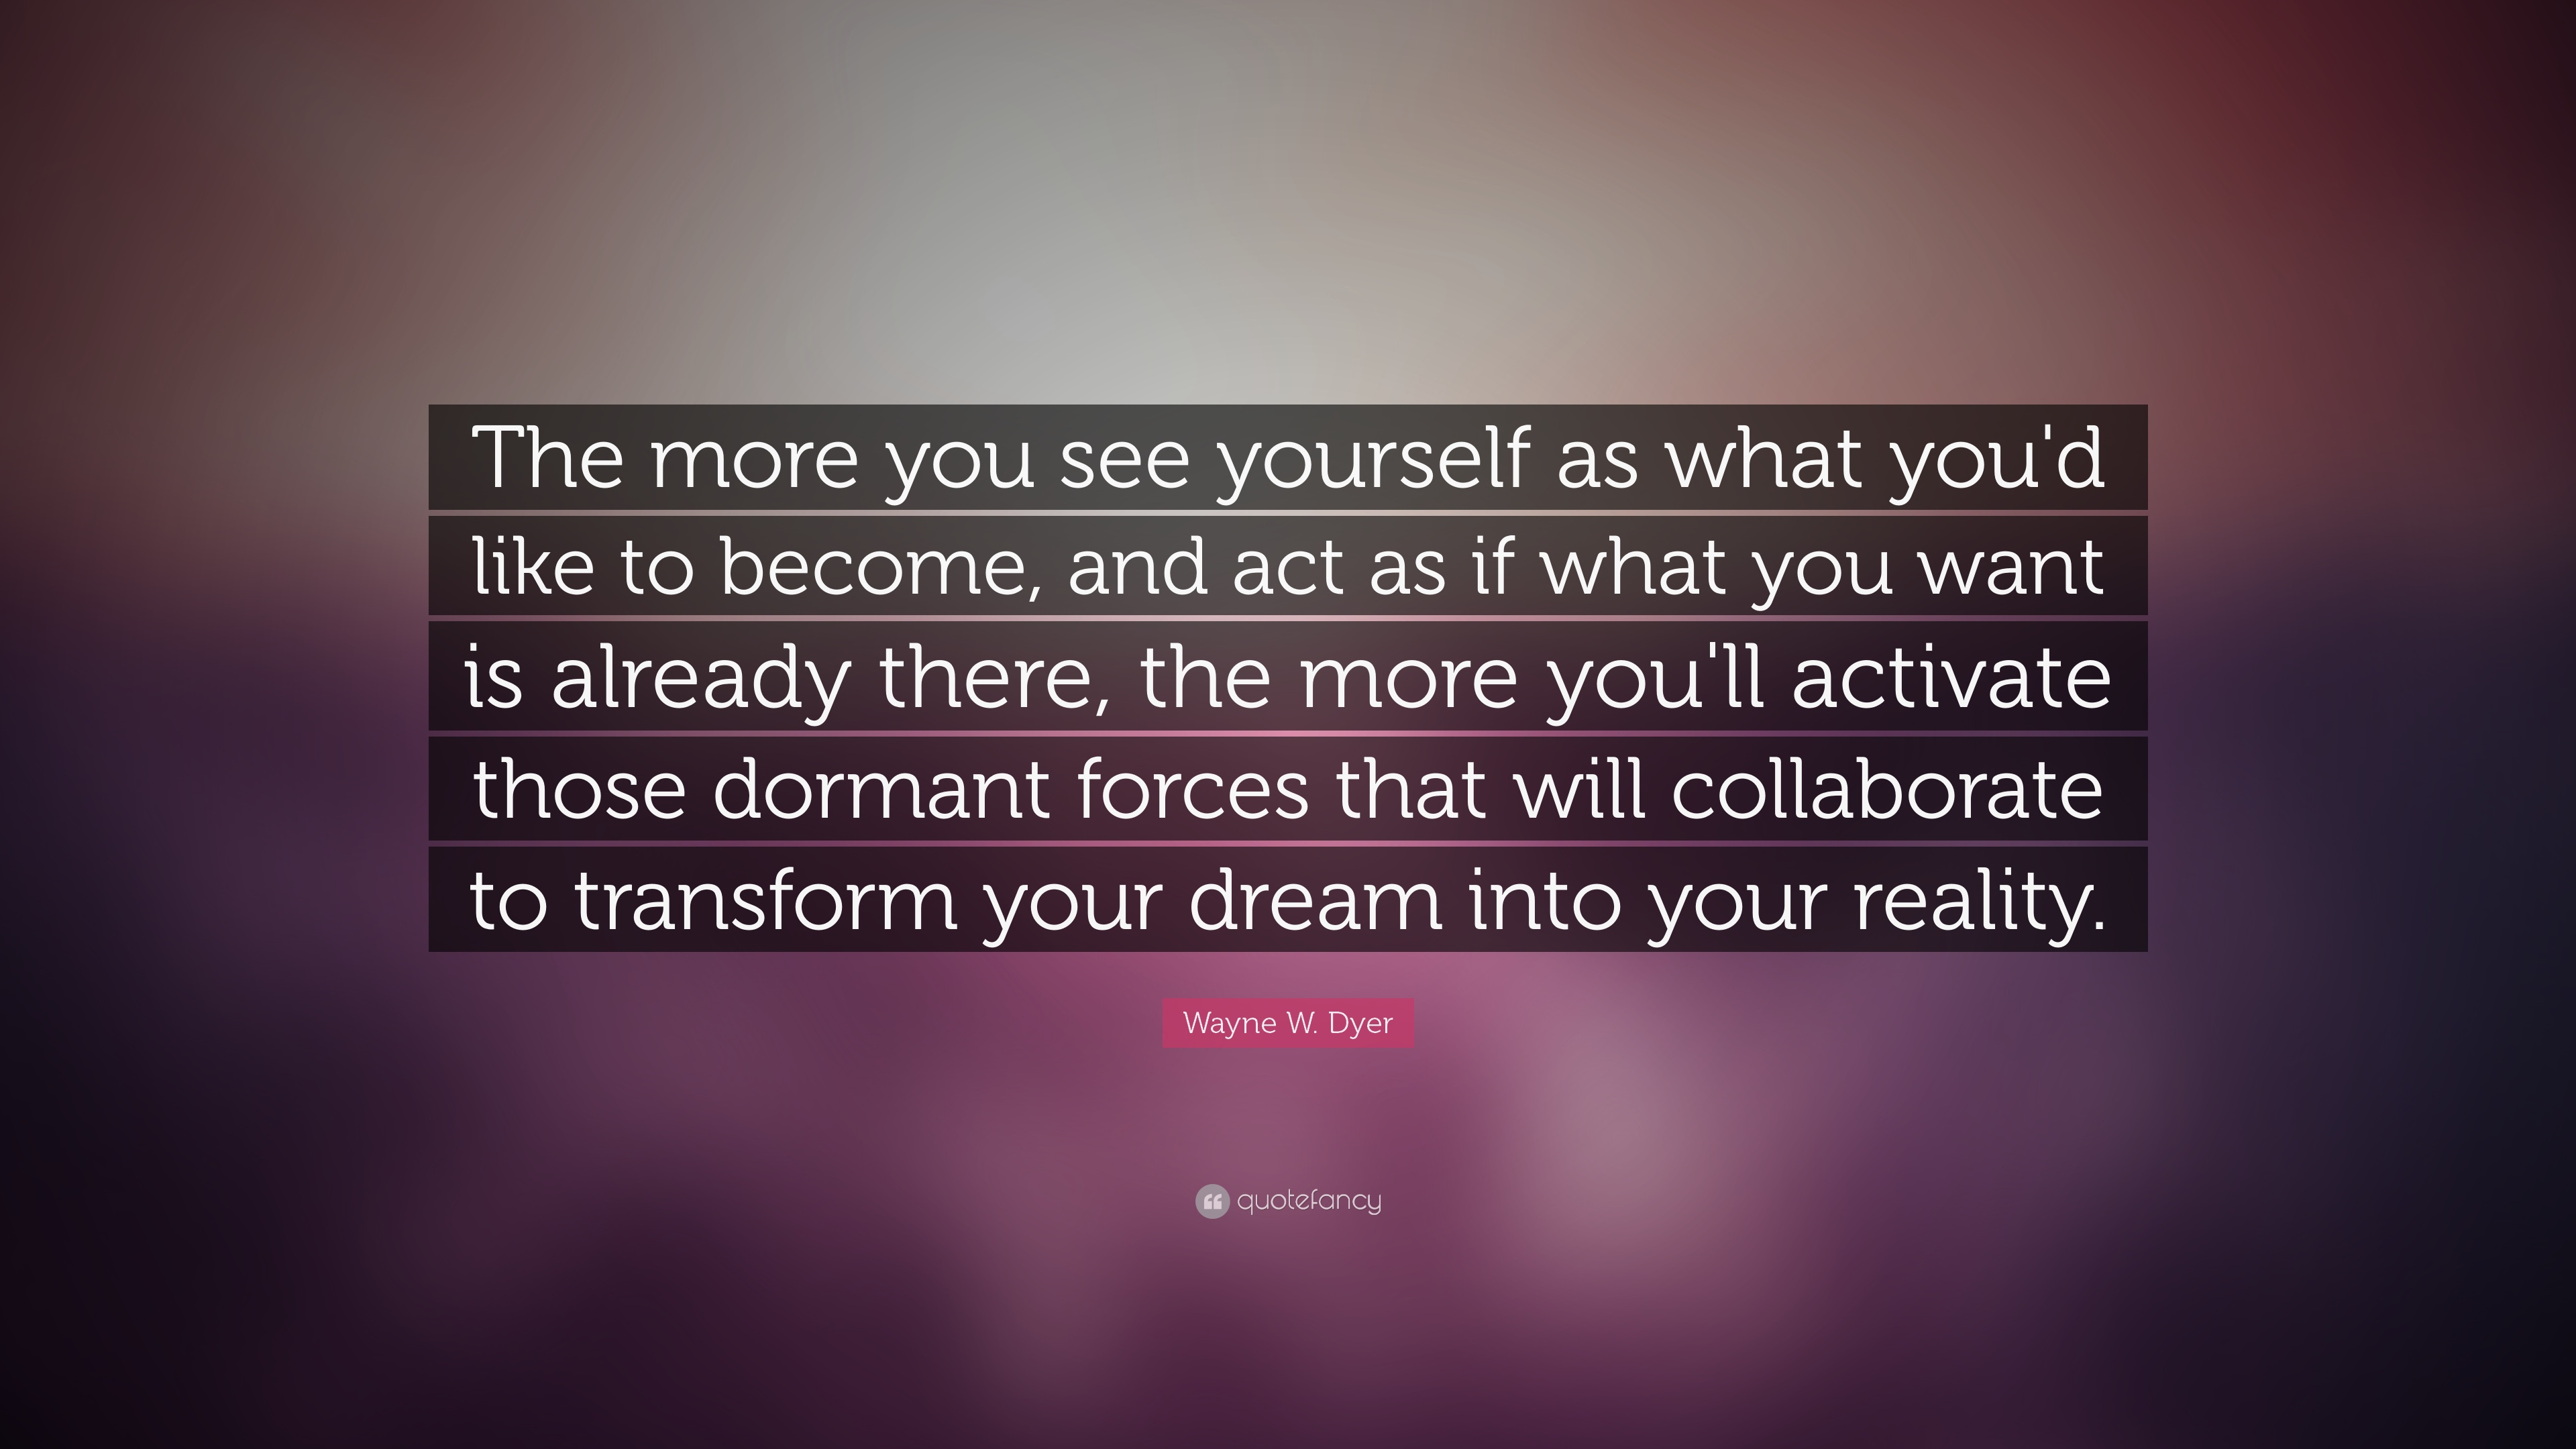 Wayne W Dyer Quote The More You See Yourself As What Youd Like